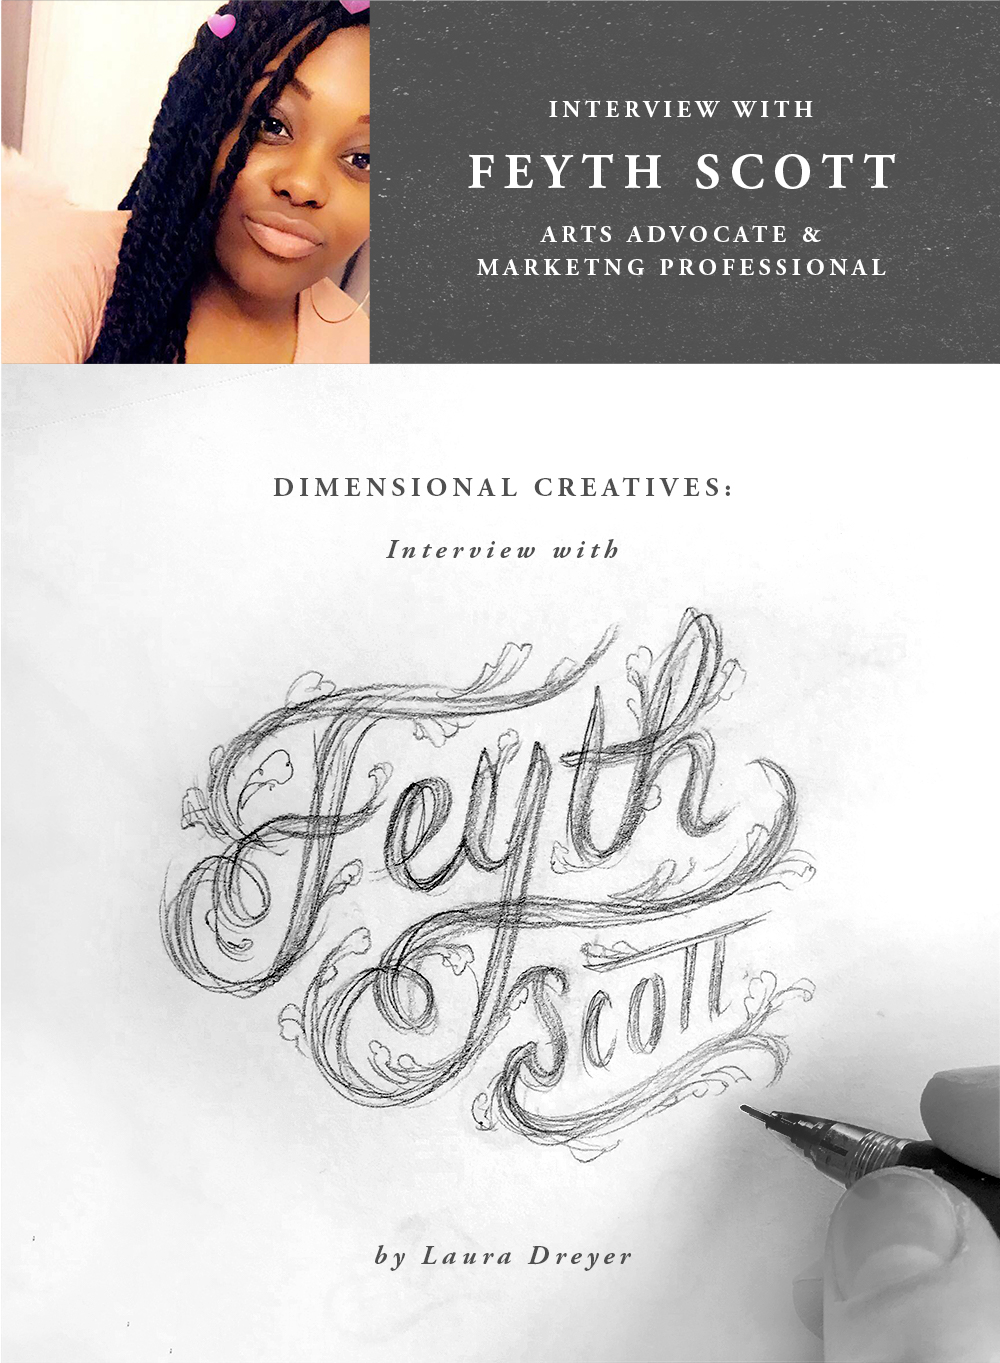 Interview with Feyth Scott, Arts Advocate and Marketing Professional. Dimensional Creatives Interview Series by Laura Dreyer.